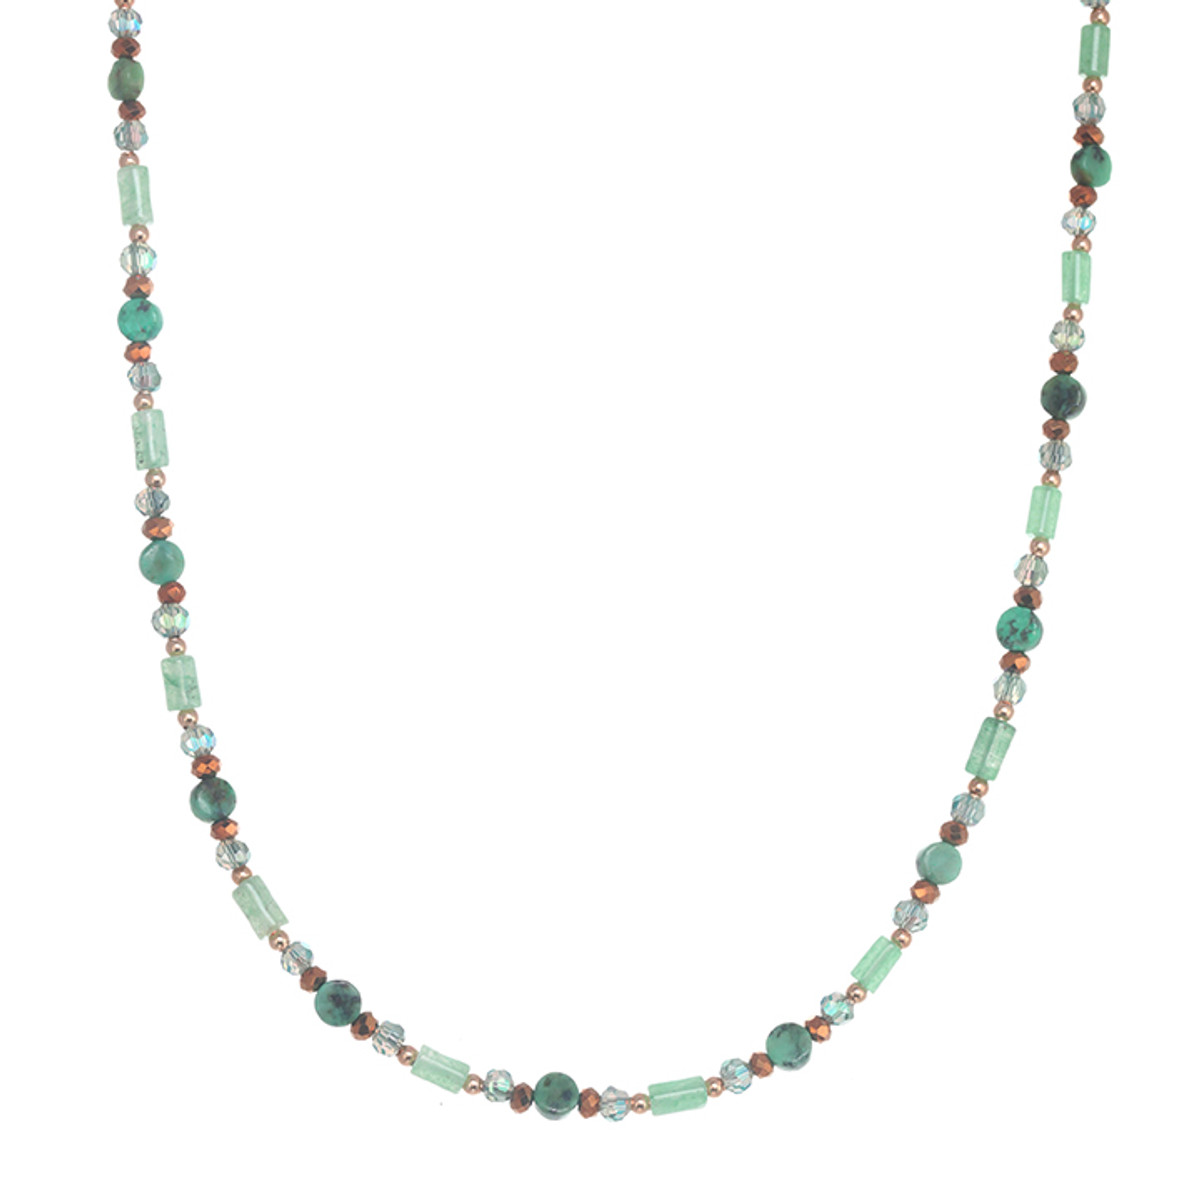 Michal Golan Lush Forest Choker Necklace